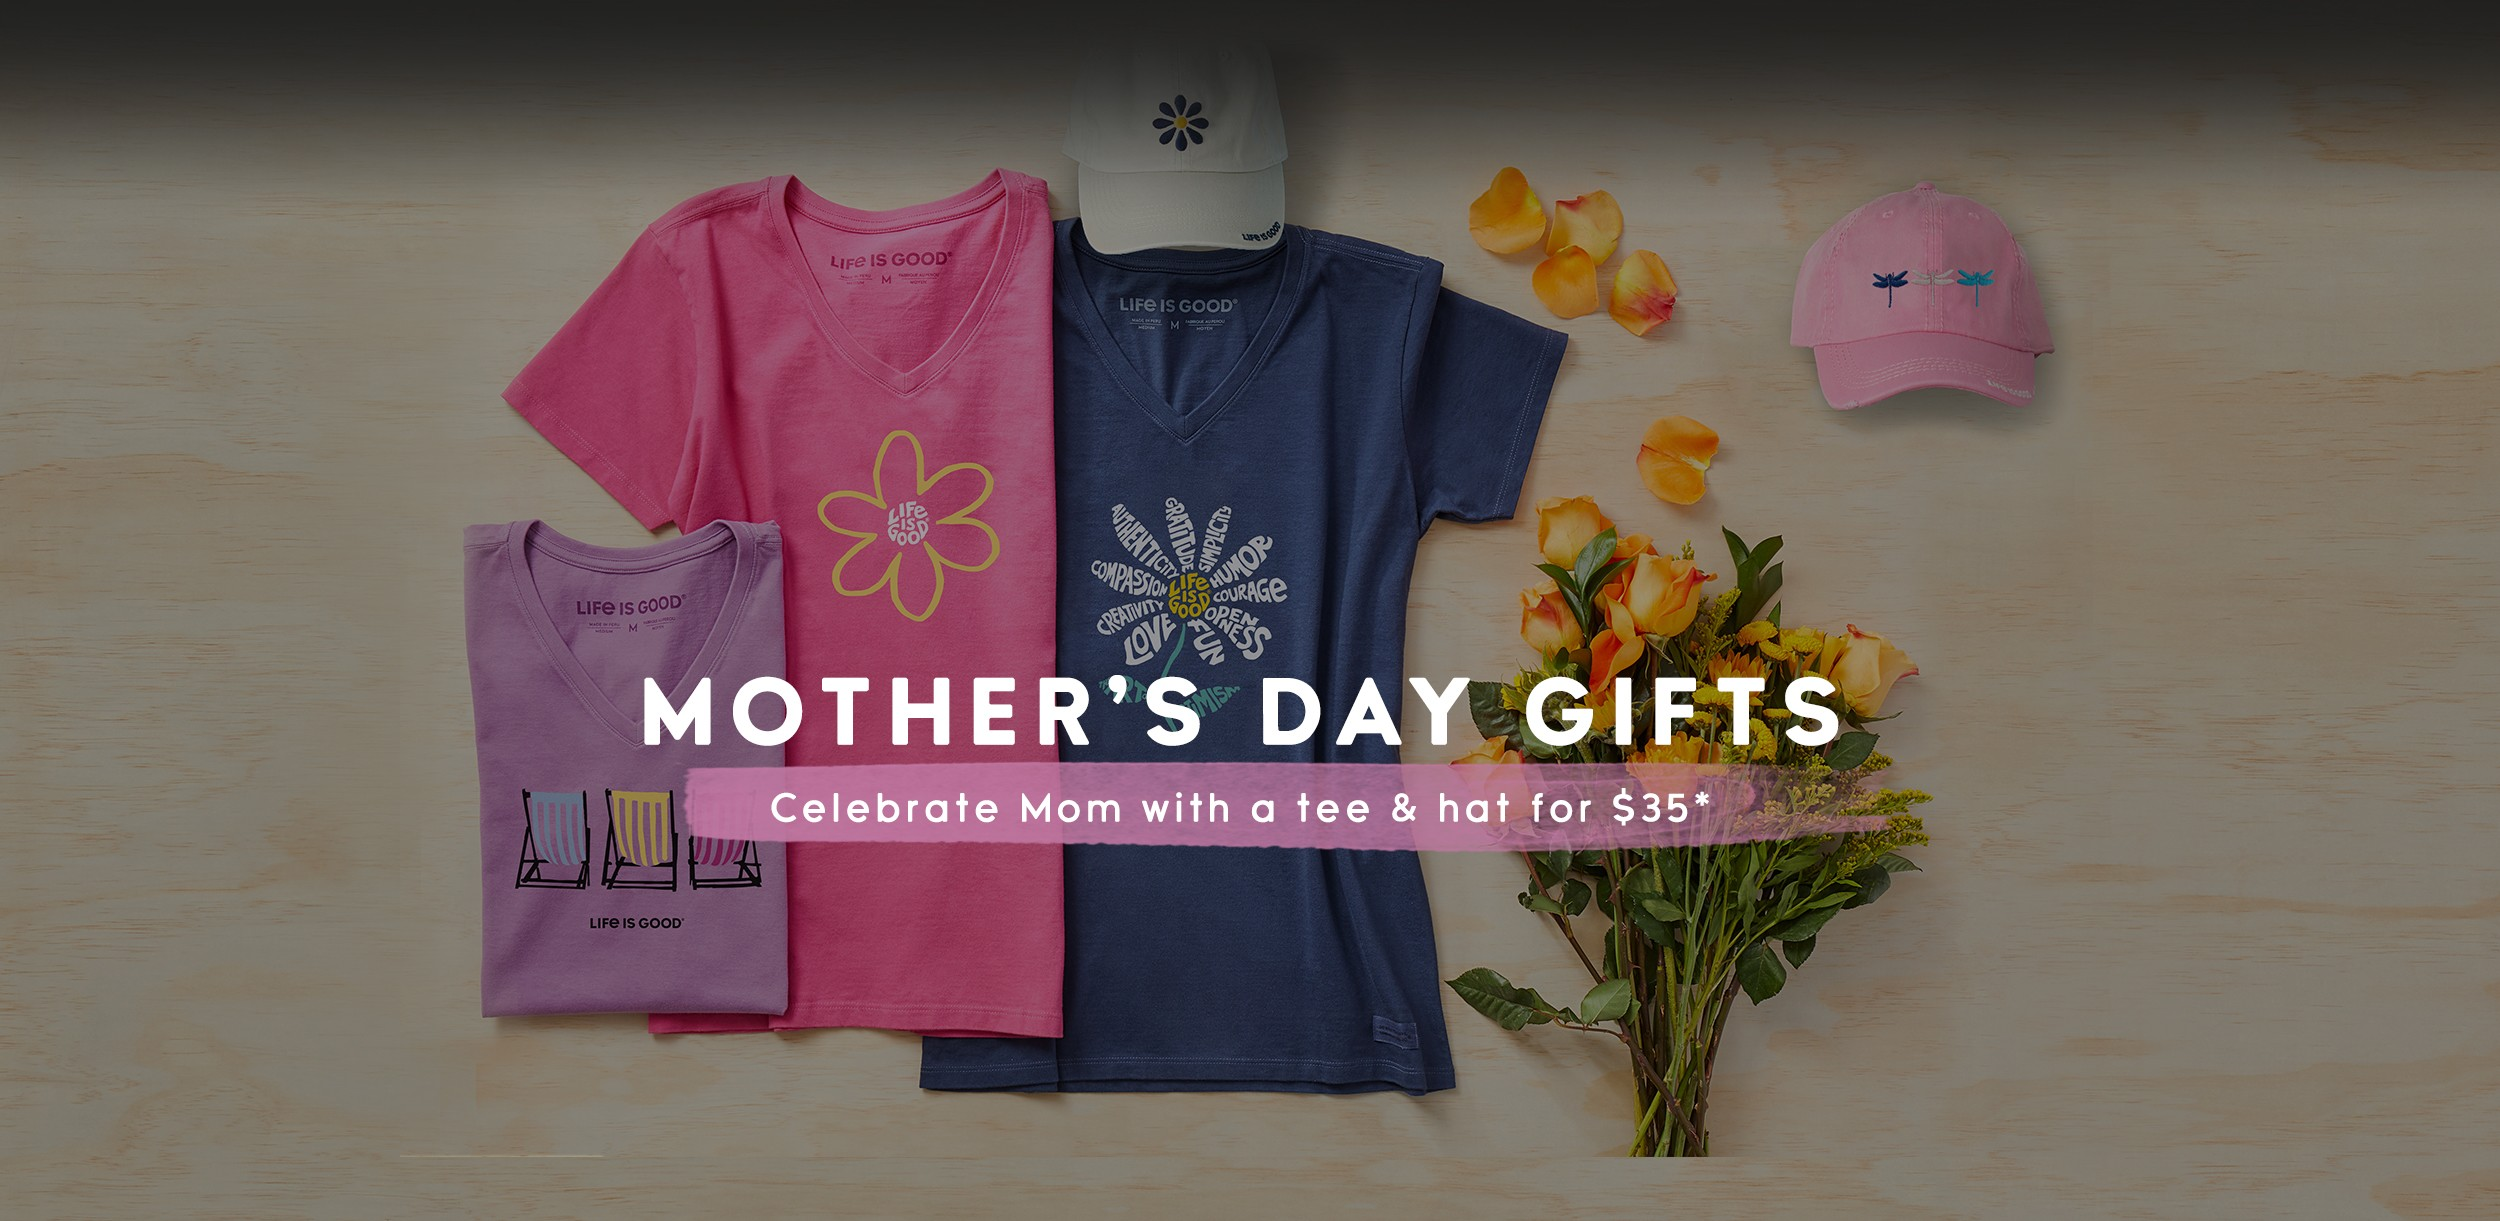 Get a Mother's Day Tee and Hat for $35